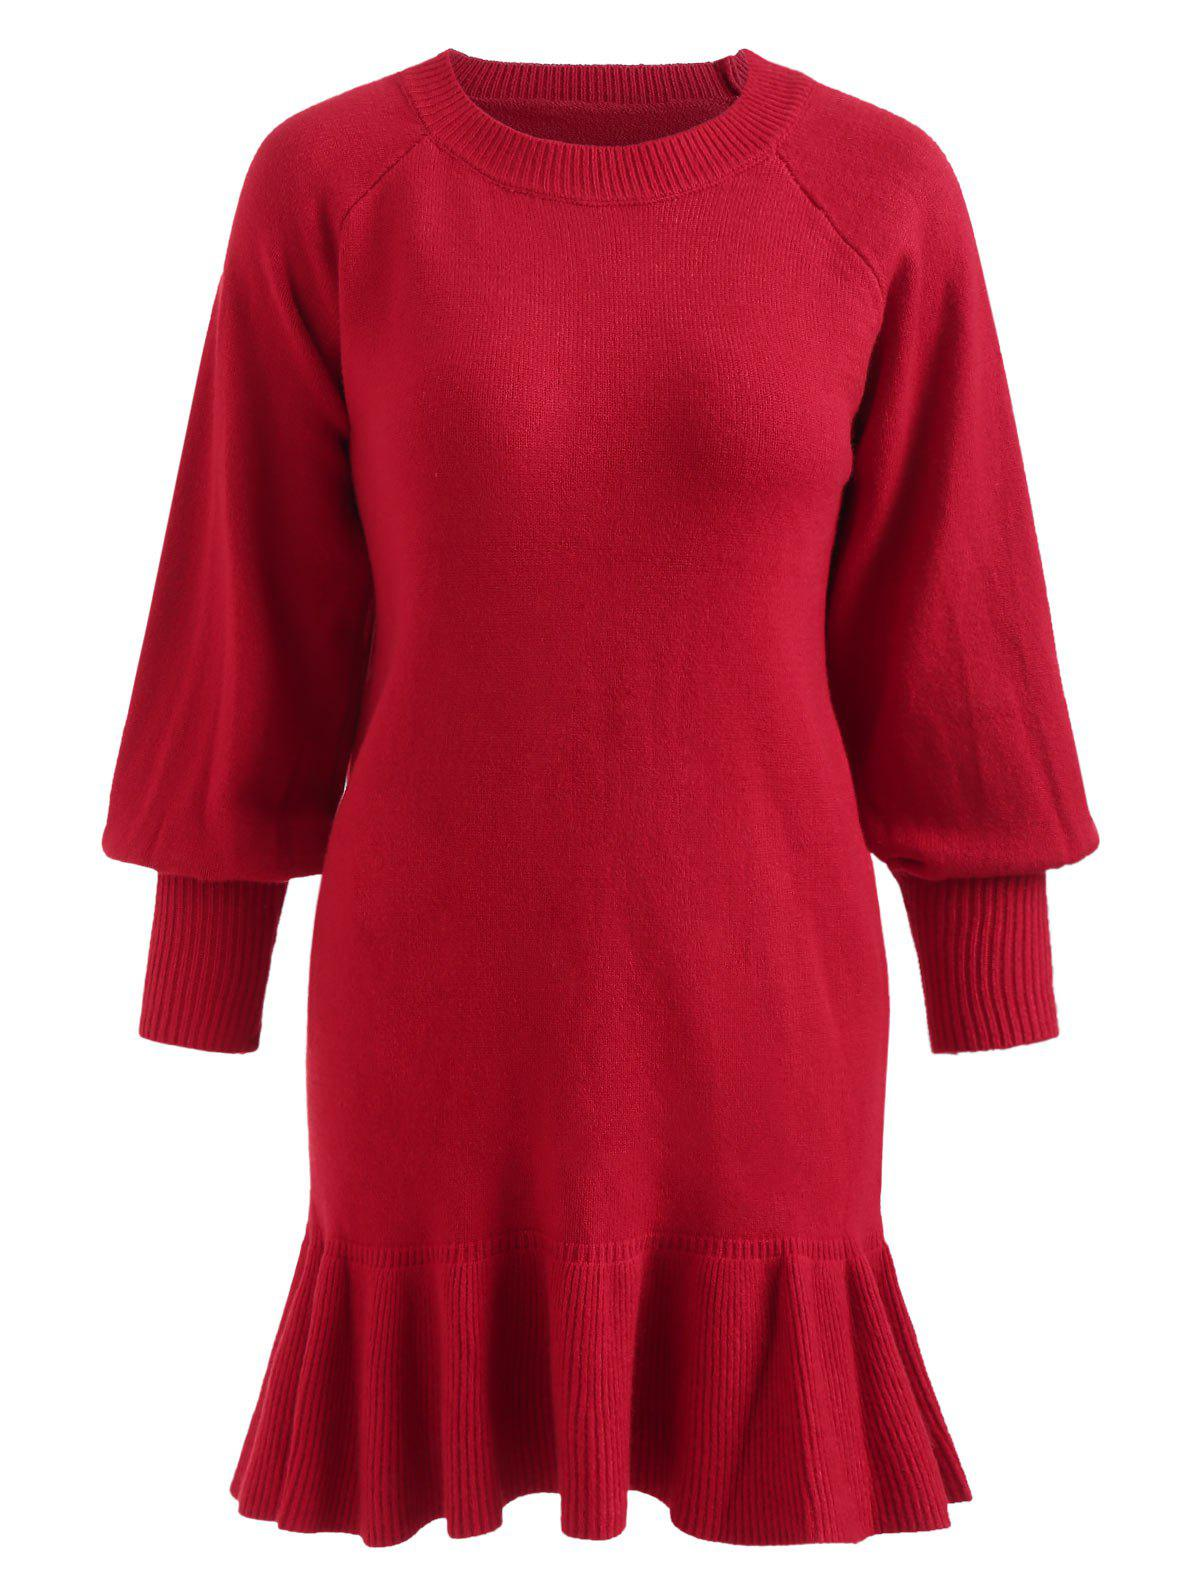 Store Puff Sleeve Plus Size Ruffle Hem Sweater Dress